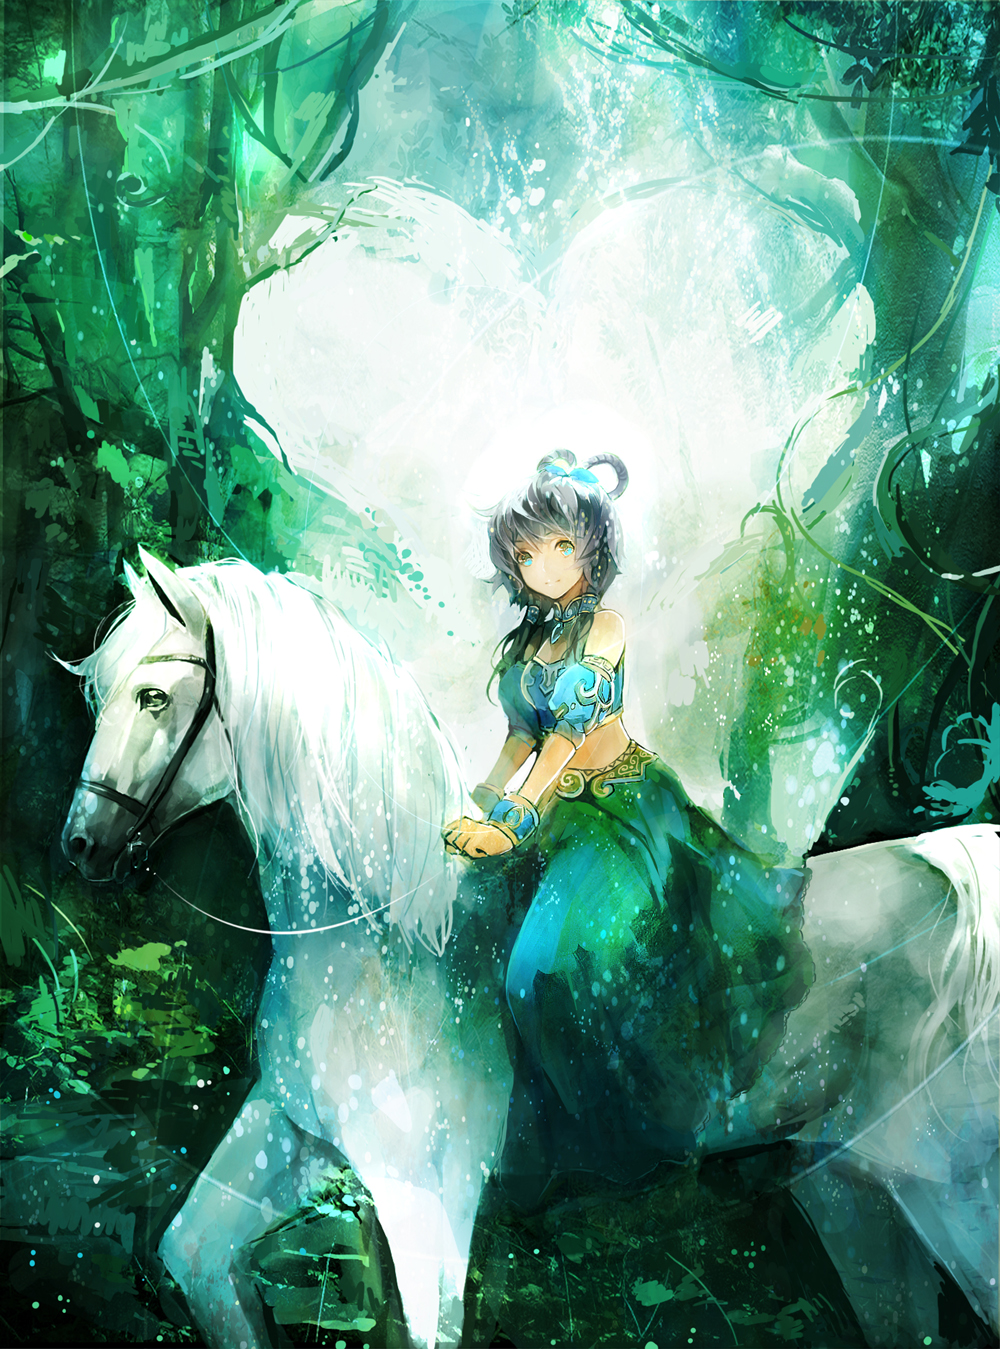 Download Wallpaper Vocaloid Dress Horses Luo Tianyi Bare